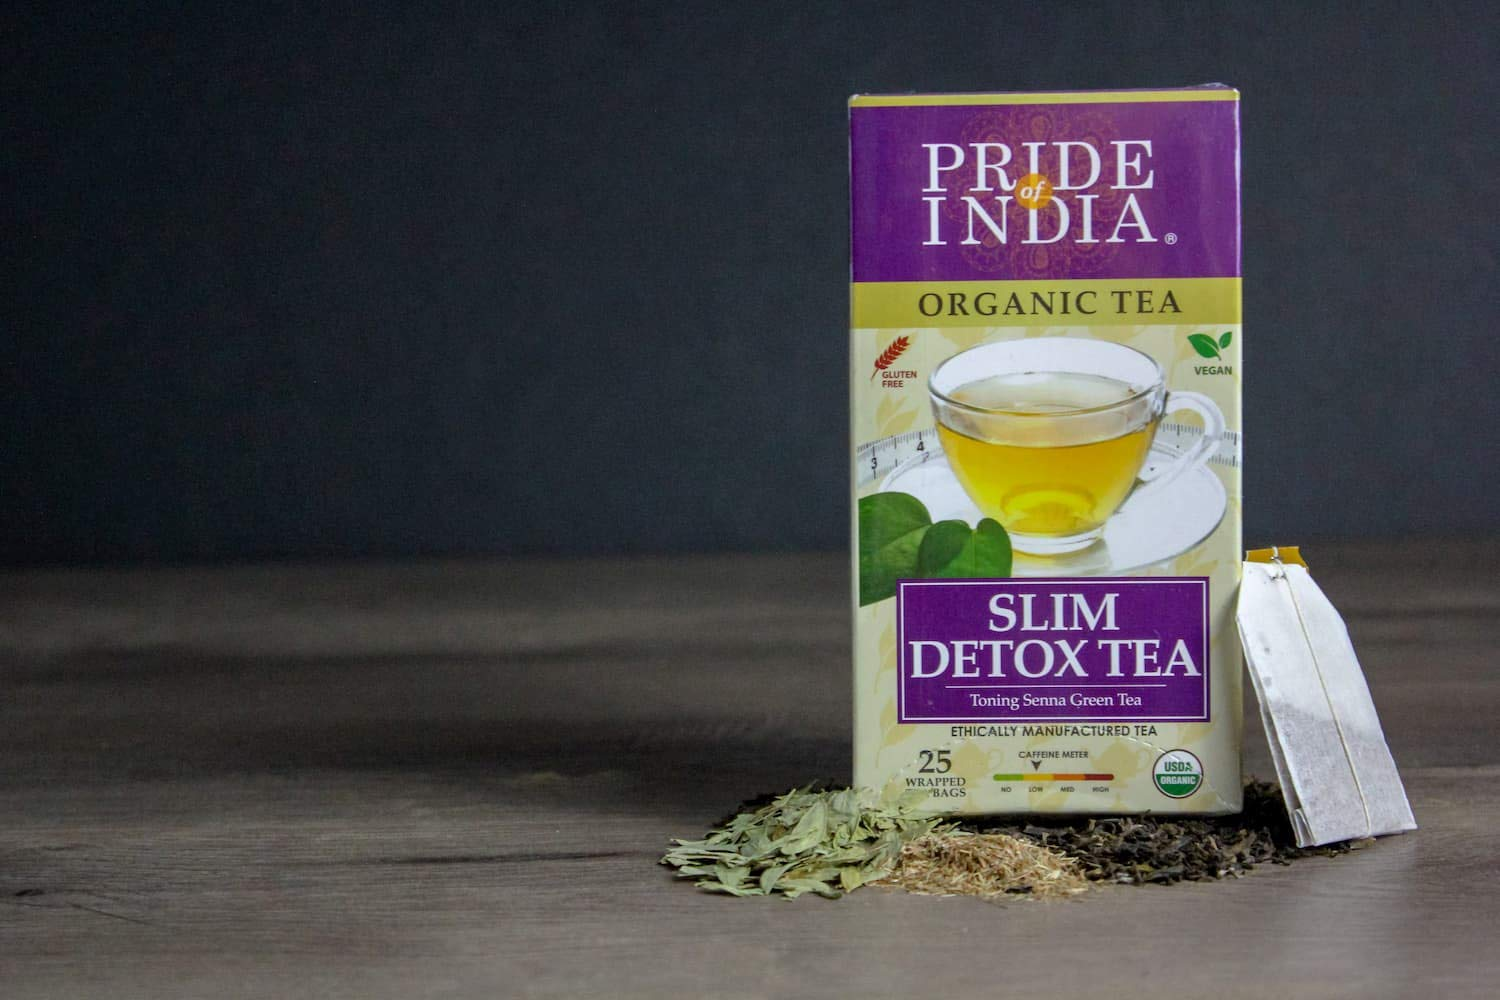 Pride Of India - Organic Senna Slim Teatox Toning Tea - 25 Tea Bags - Herbal Senna-Green Tea - Good for body shaping - Tea tox in 2 weeks - natural laxative and very low caffeine.